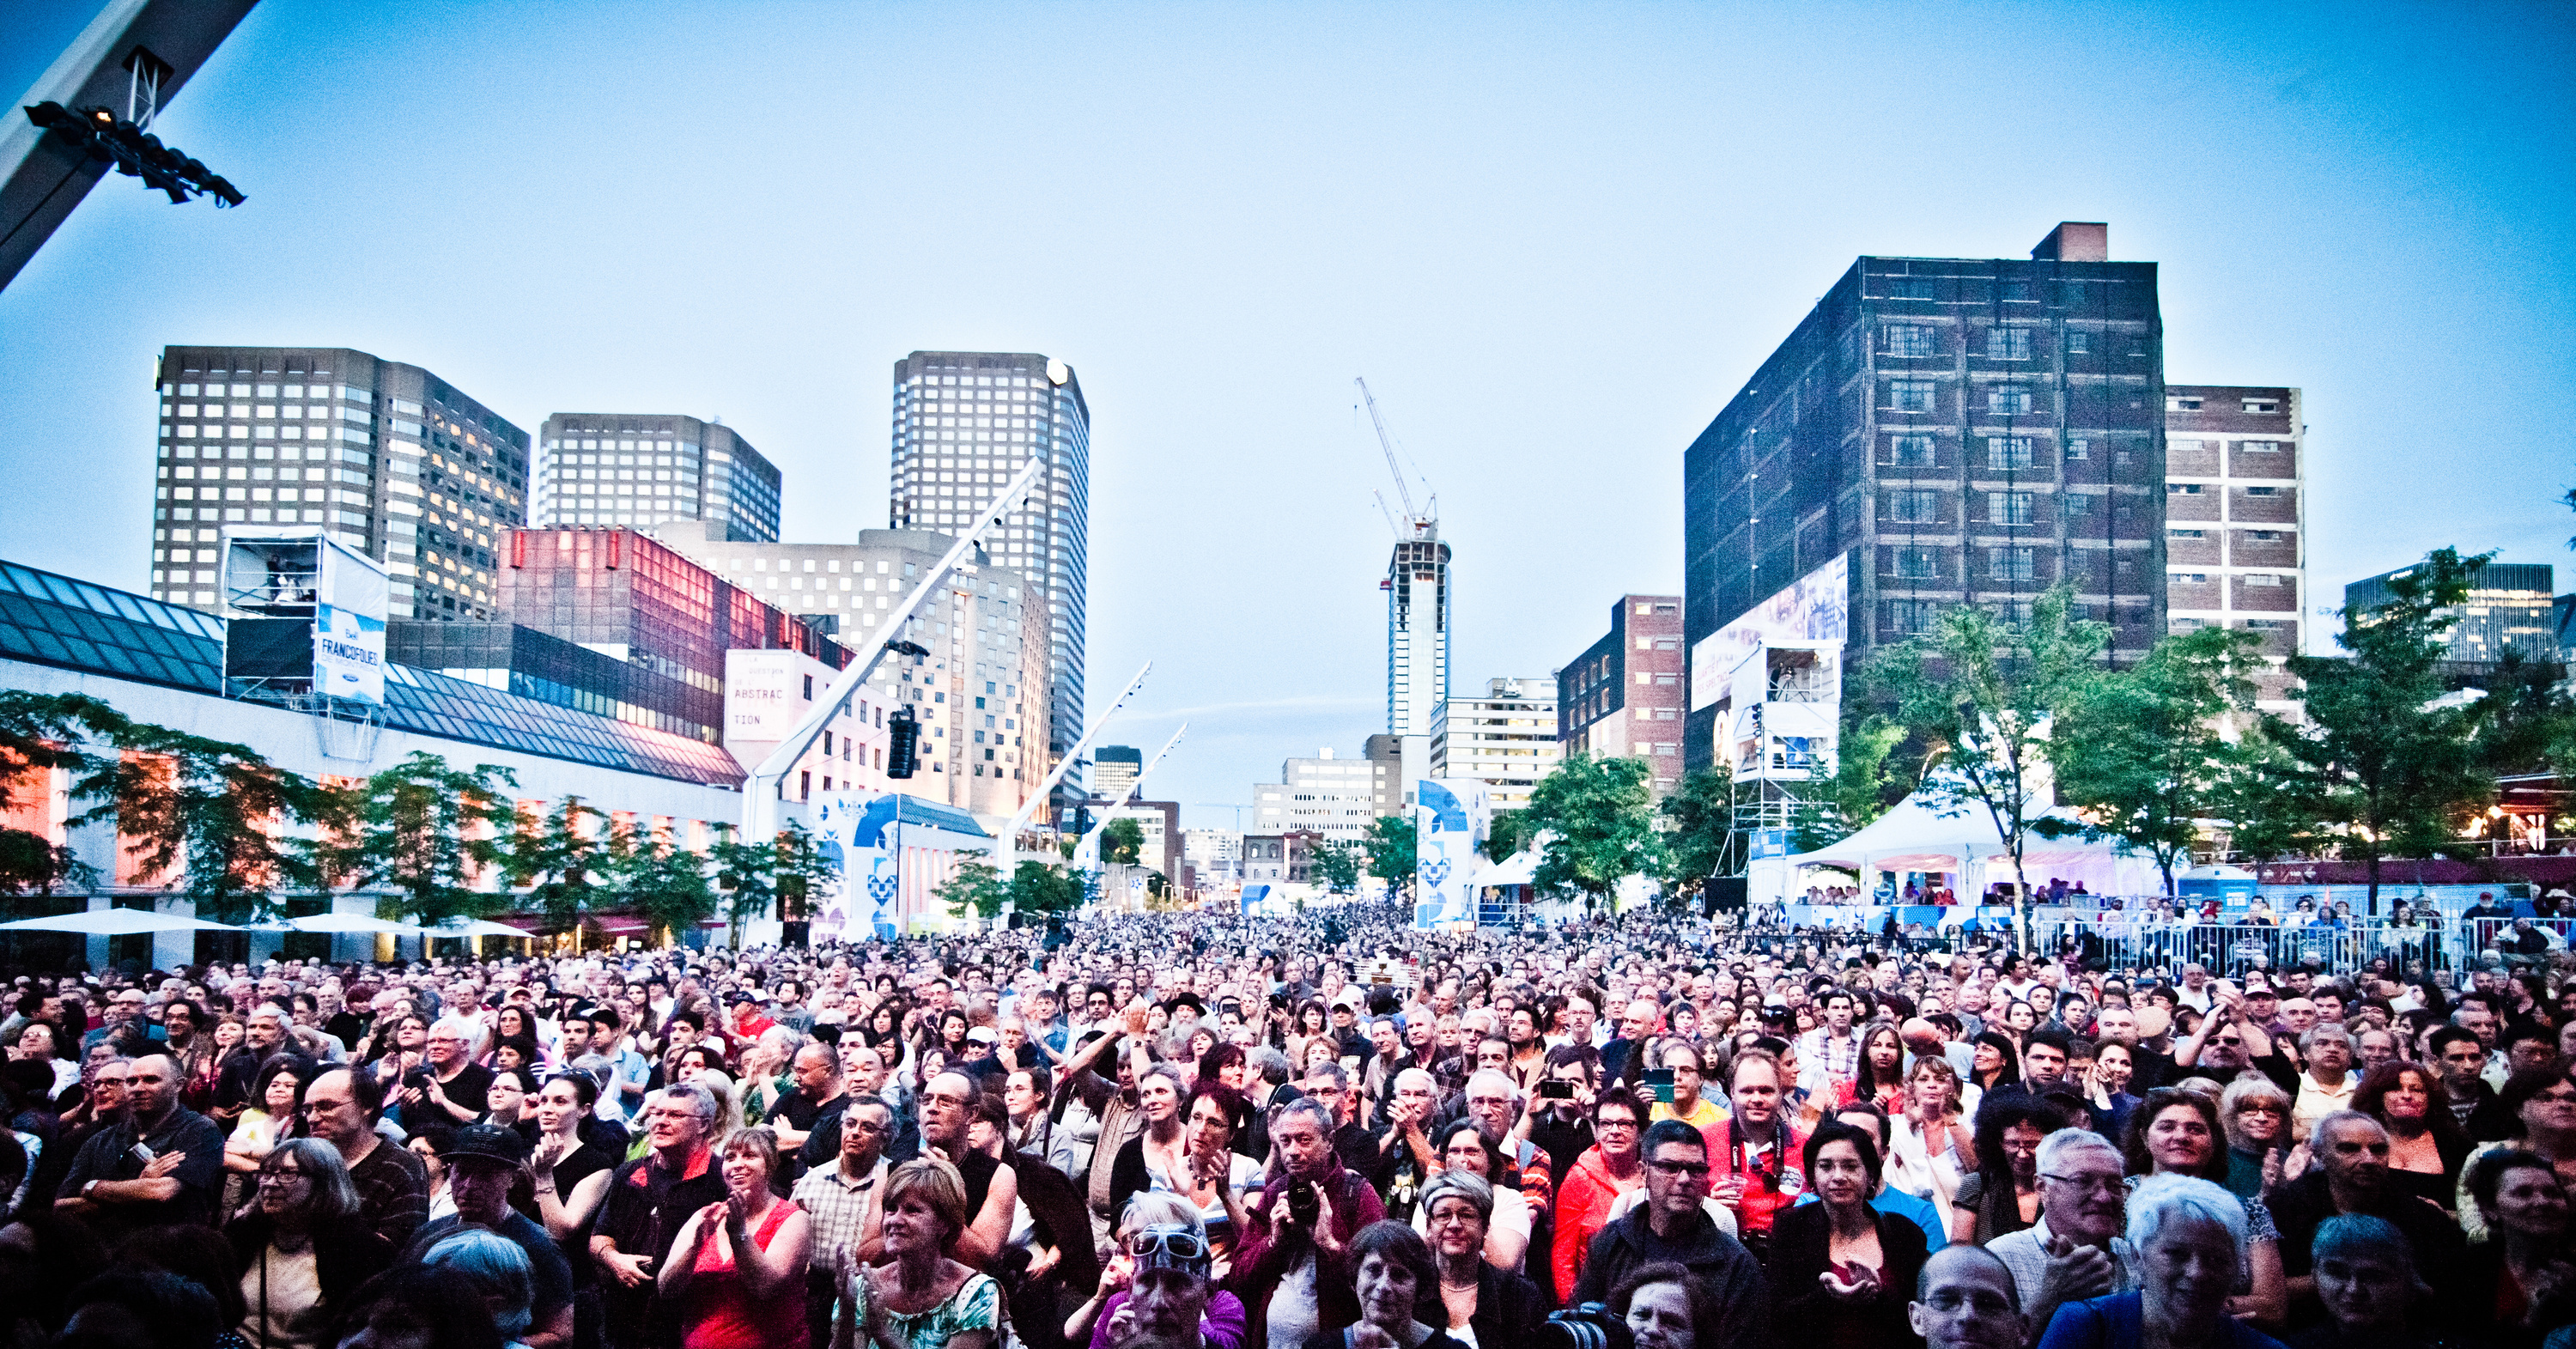 The best events and festivals in Montreal